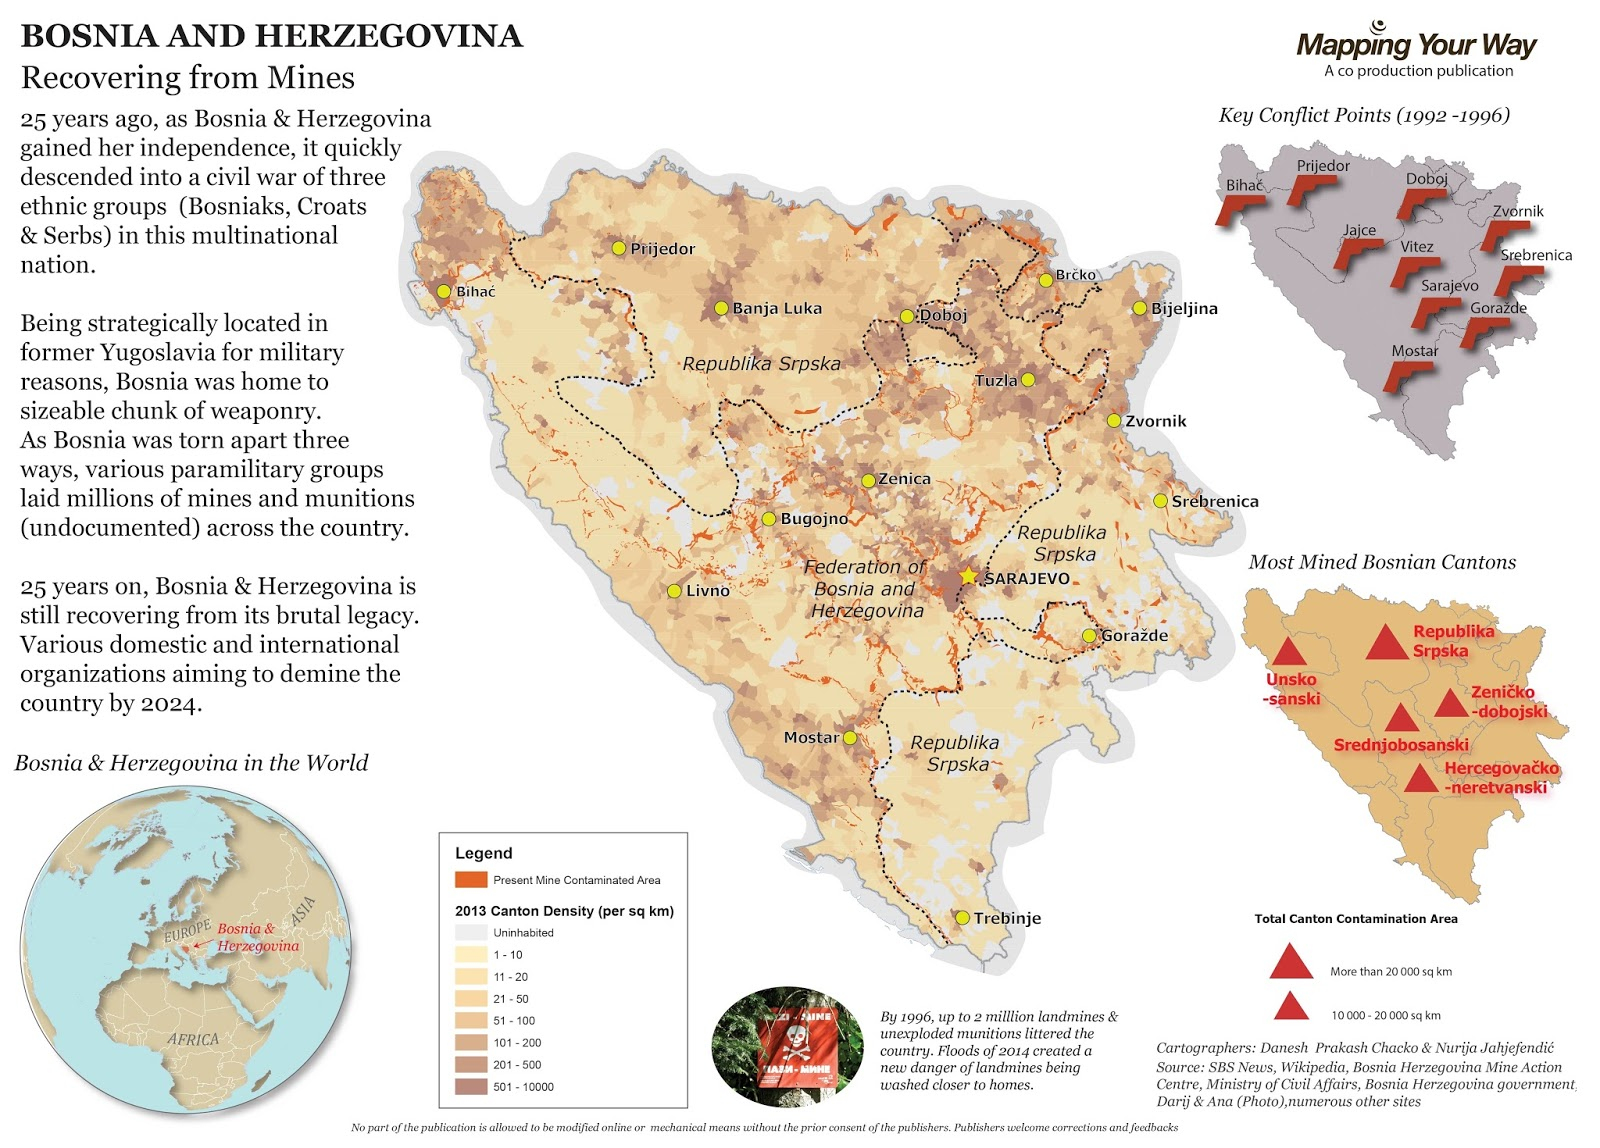 bosnia herzegovina landmine contamination map